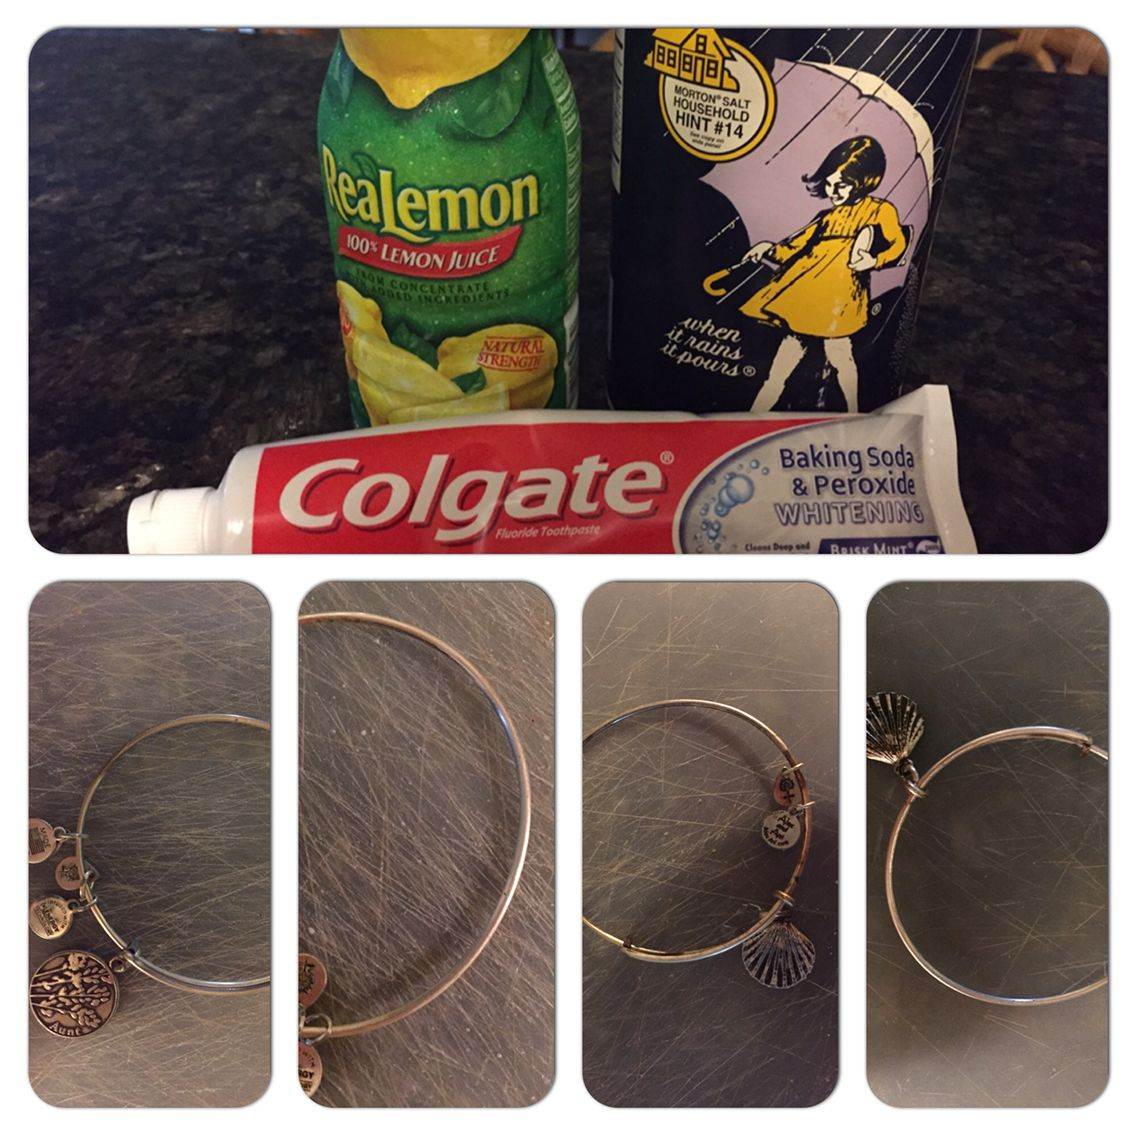 How To Clean Tarnished Alex And Ani Bracelets Cleaning Jewelry Alex And Ani Bracelets Alex And Ani Jewelry